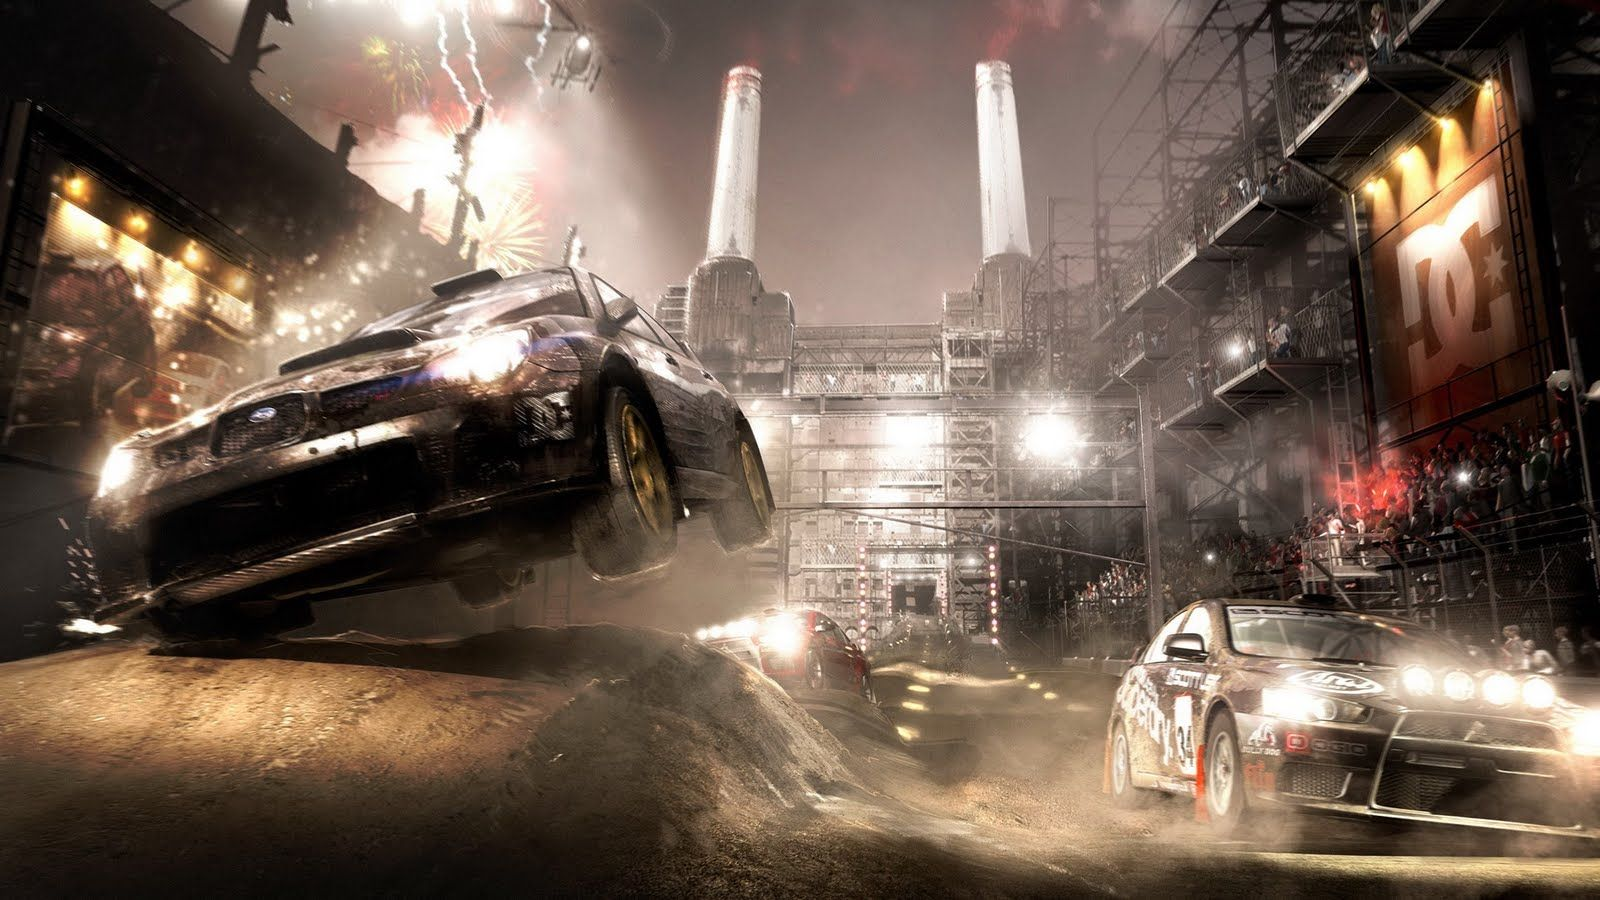 Hd wallpaper games - Race Cars Game Hd Game Wallpapers